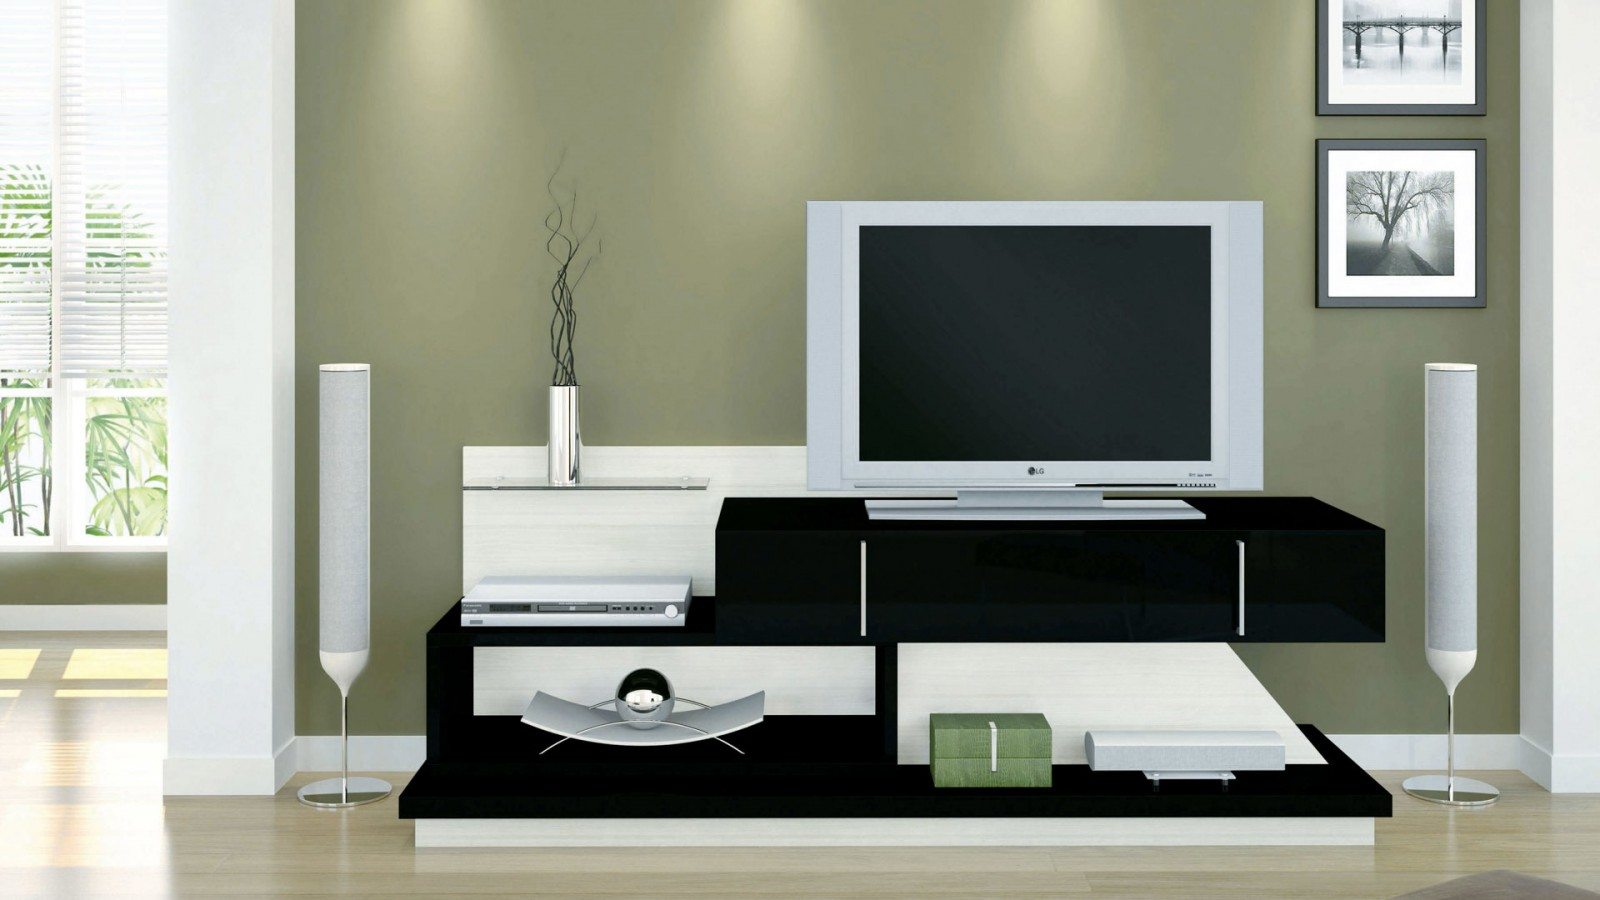 room-style-house-626